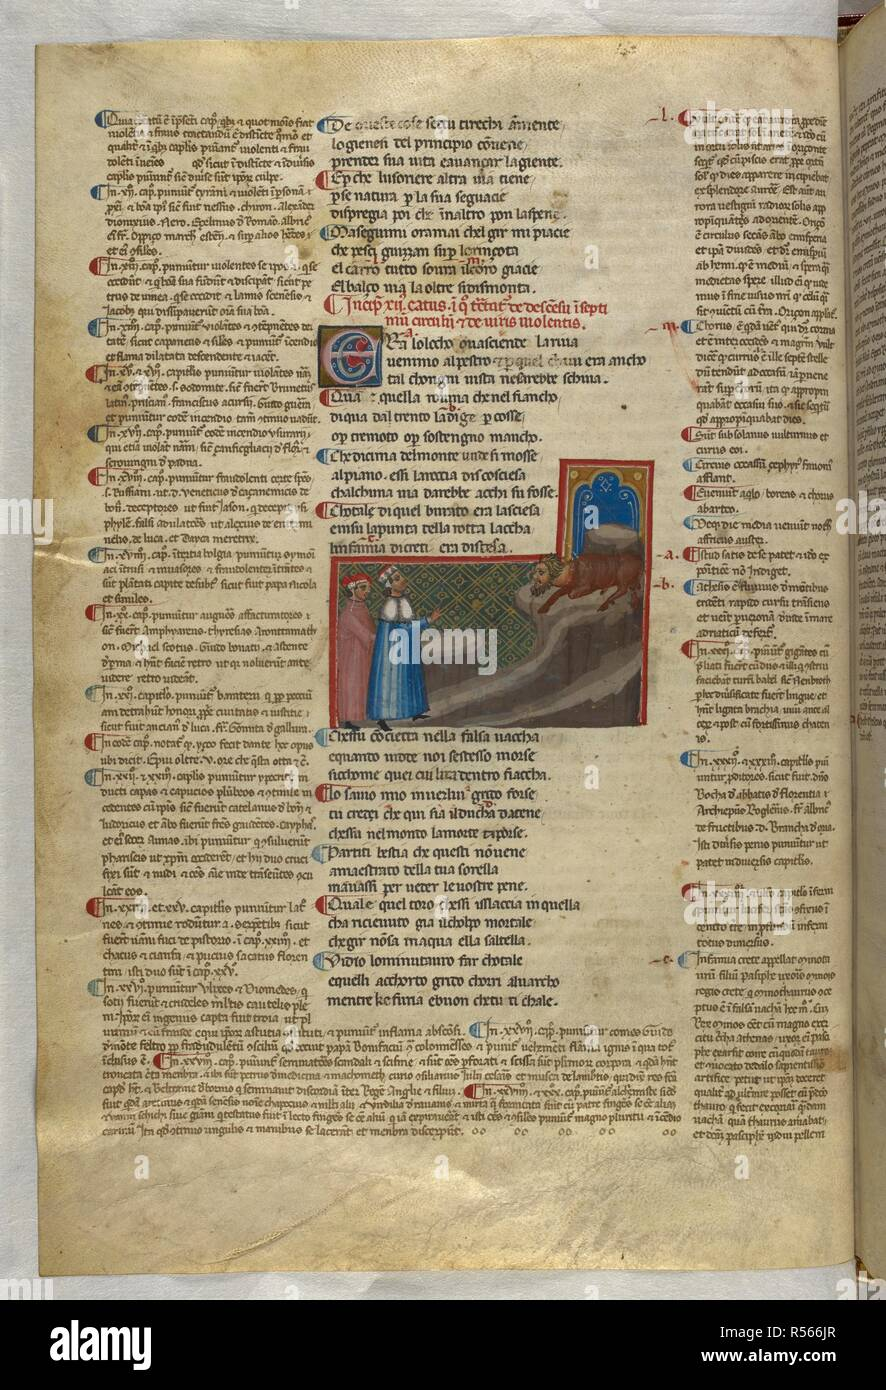 Inferno: Dante and Virgil watch the minotaur from below. Dante Alighieri, Divina Commedia ( The Divine Comedy ), with a commentary in Latin. 1st half of the 14th century. Source: Egerton 943, f.21v. Language: Italian, Latin. - Stock Image